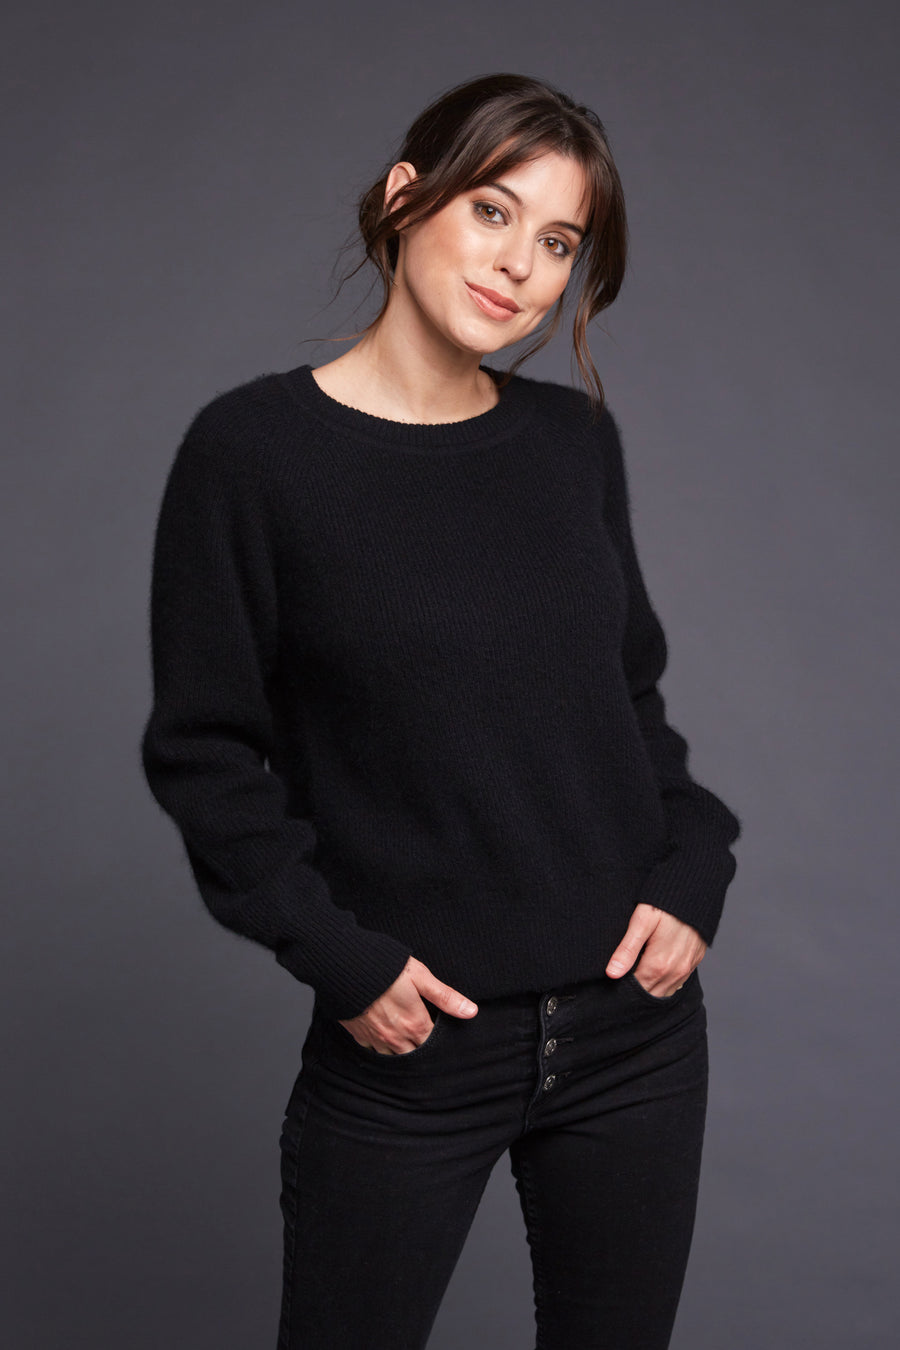 pine cashmere betsy trendy women's 100% pure cashmere crewneck sweater in black